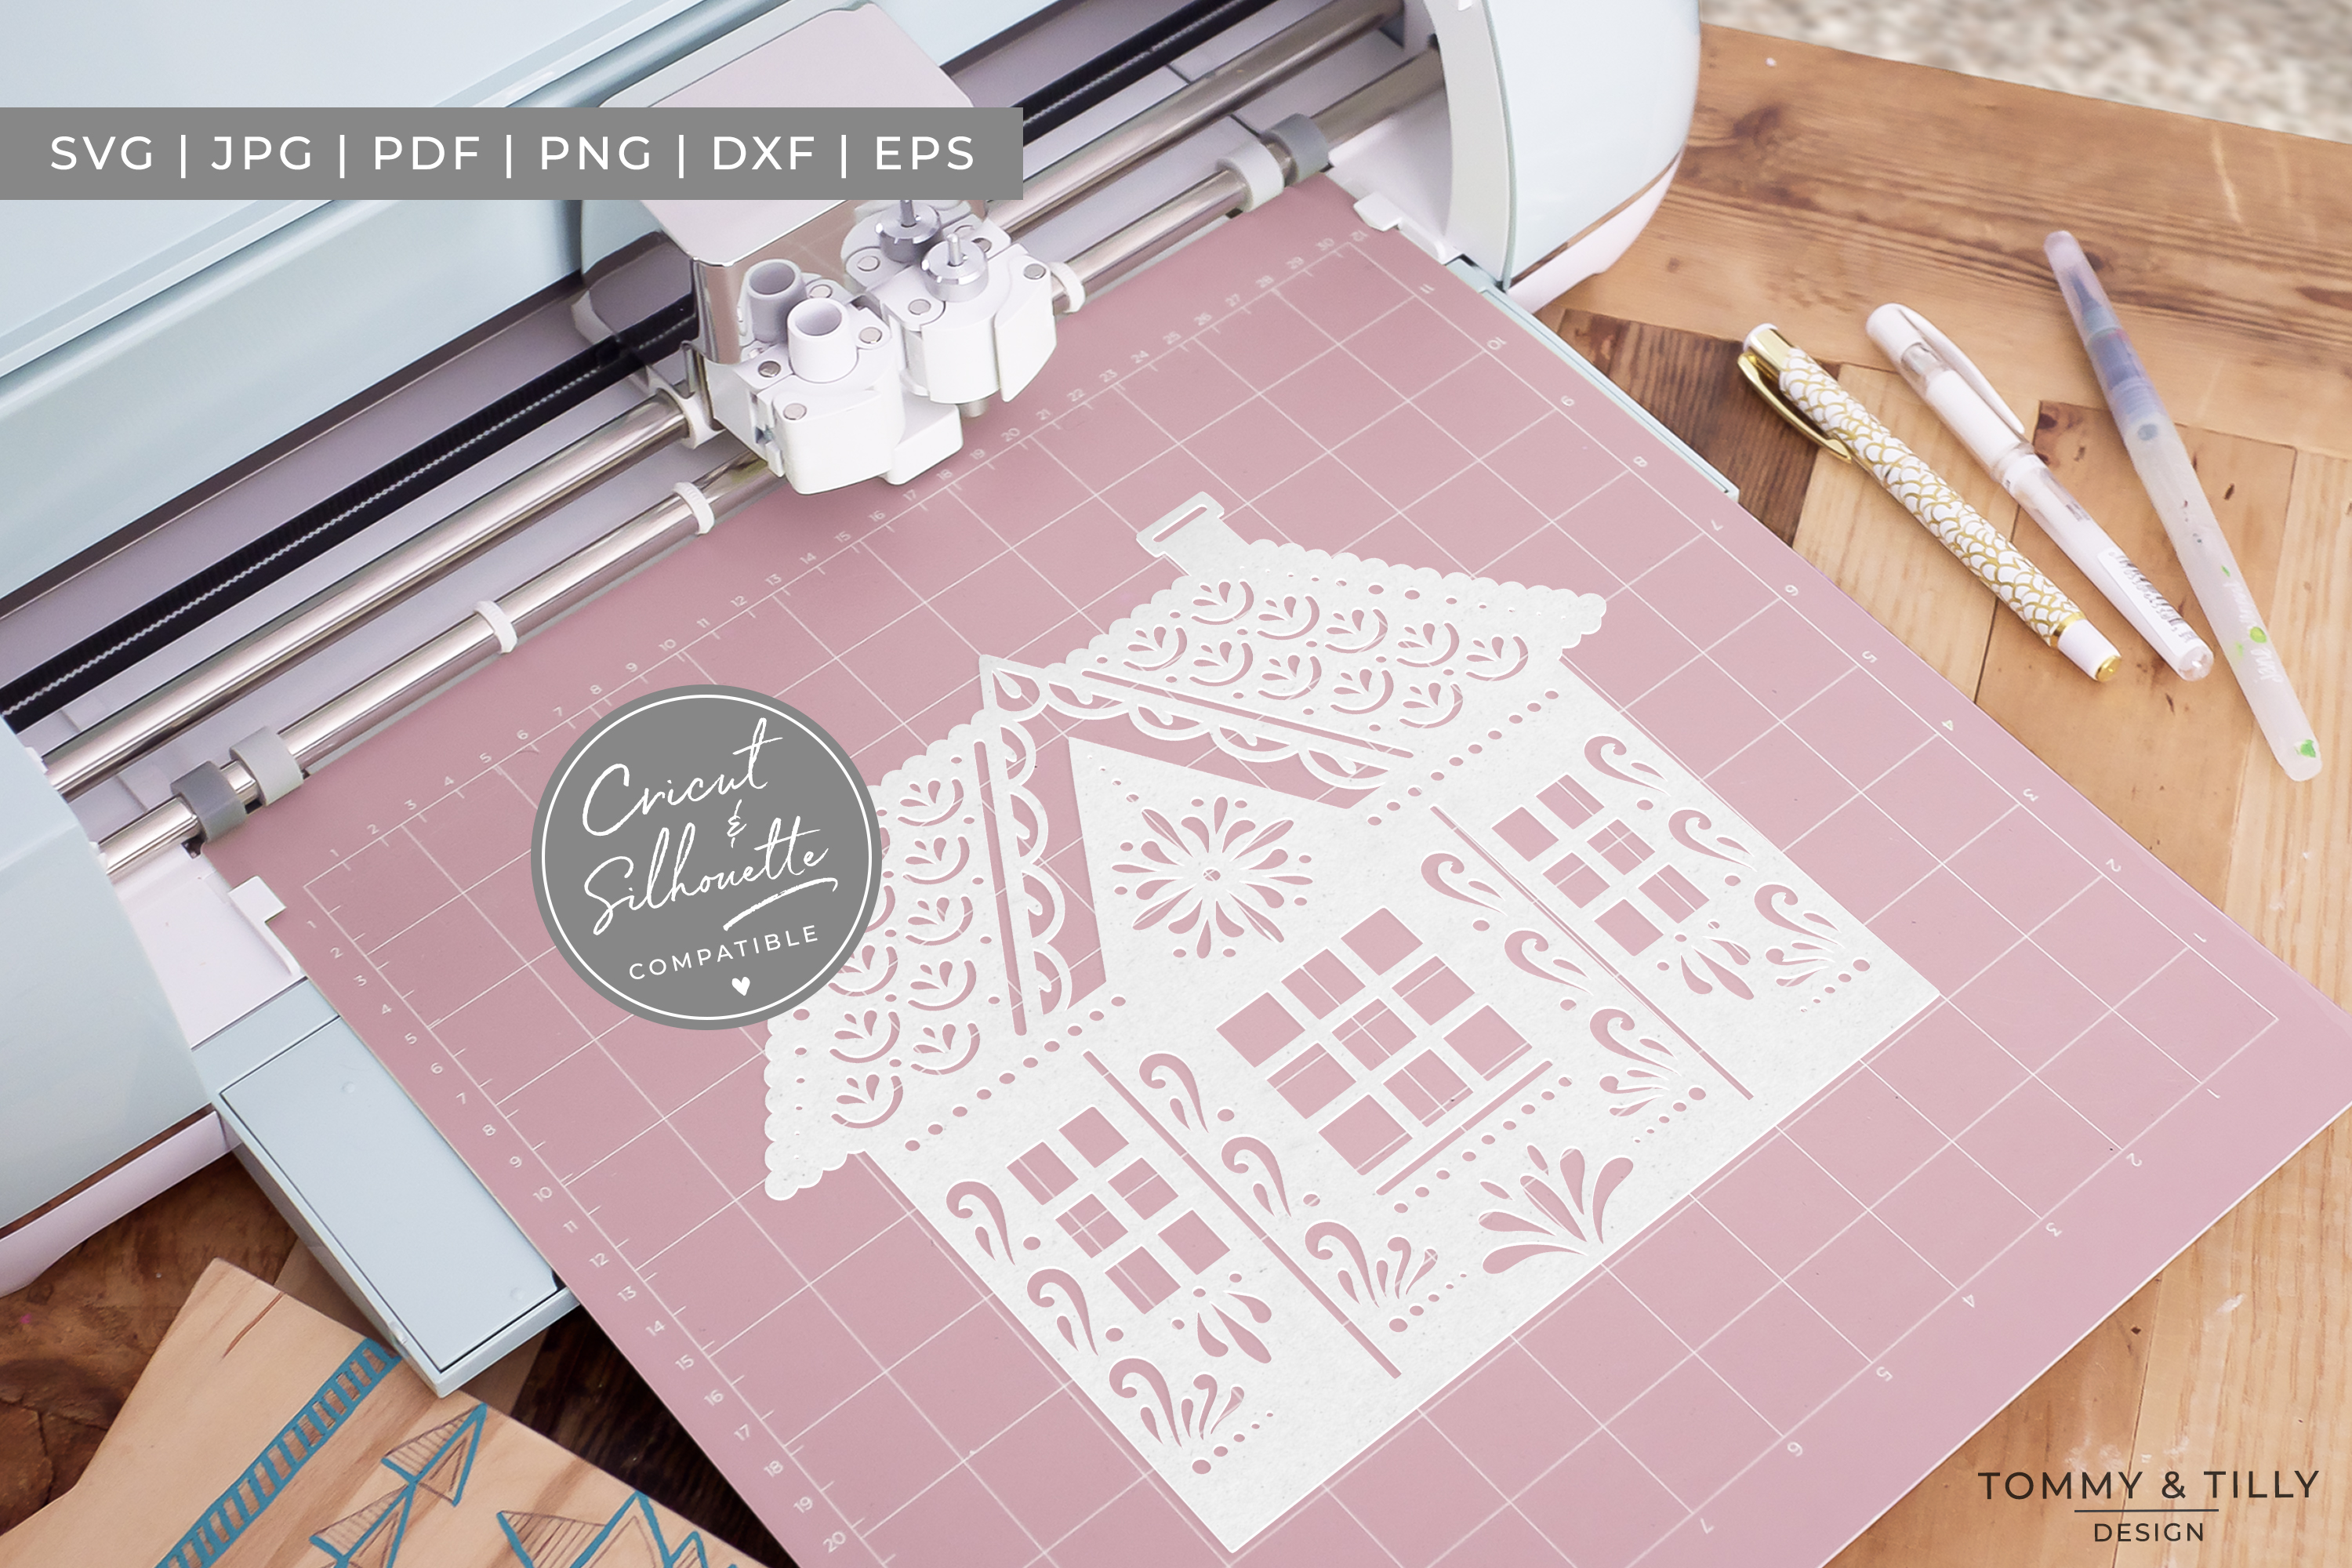 Intricate House No.2 - SVG EPS DXF PNG PDF JPG Cut File example image 2